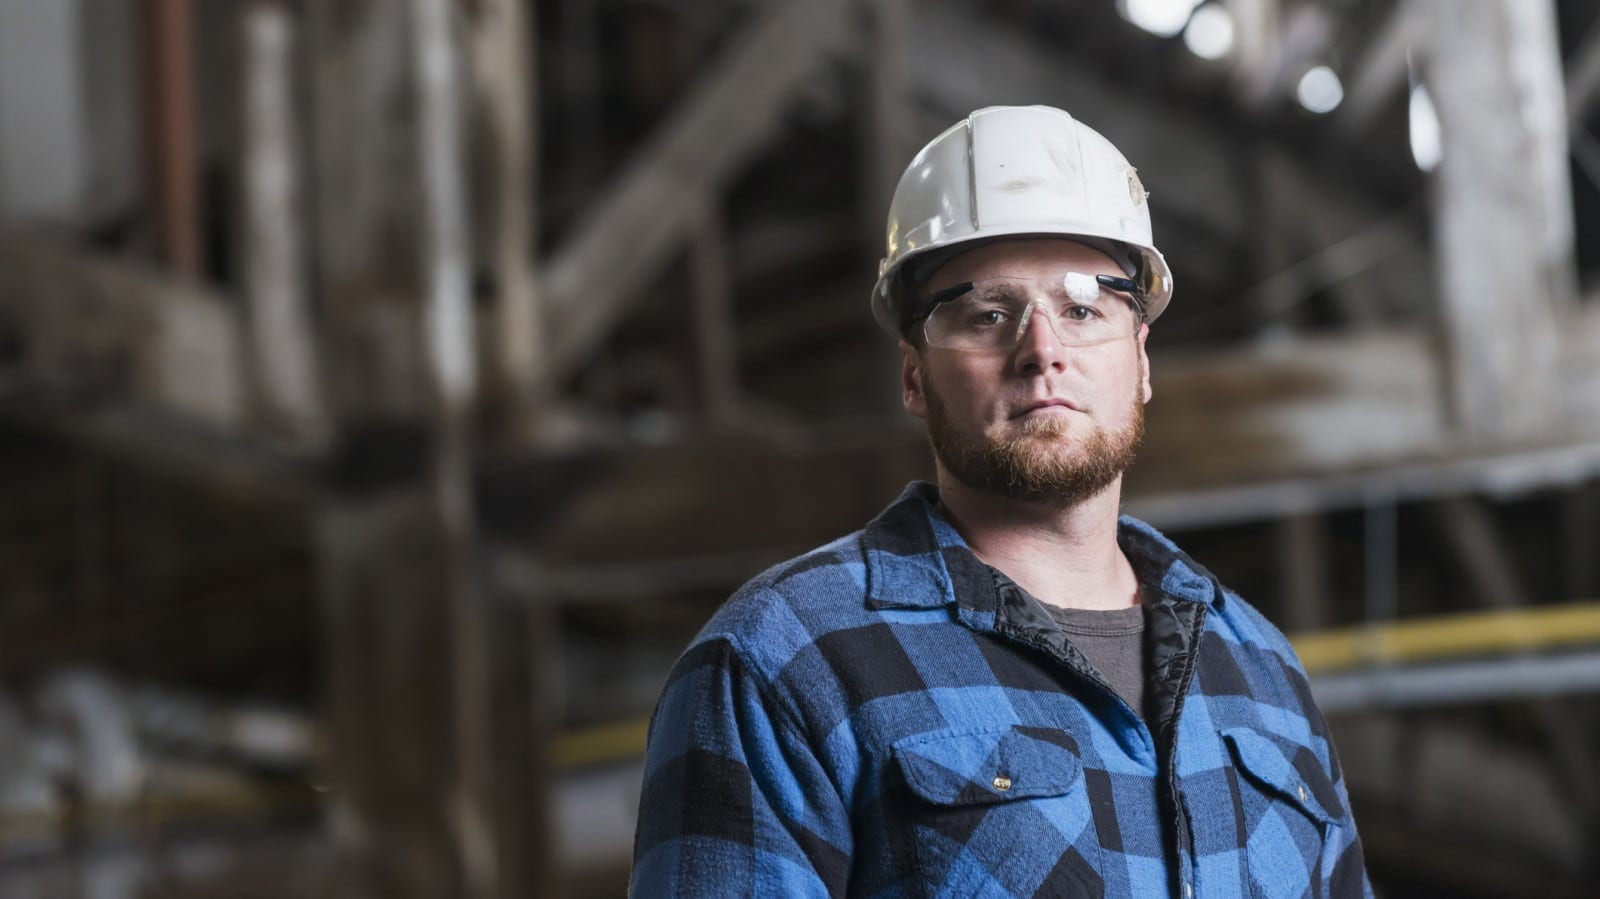 Blue Collar Worker In Hard Hat Stock Photo